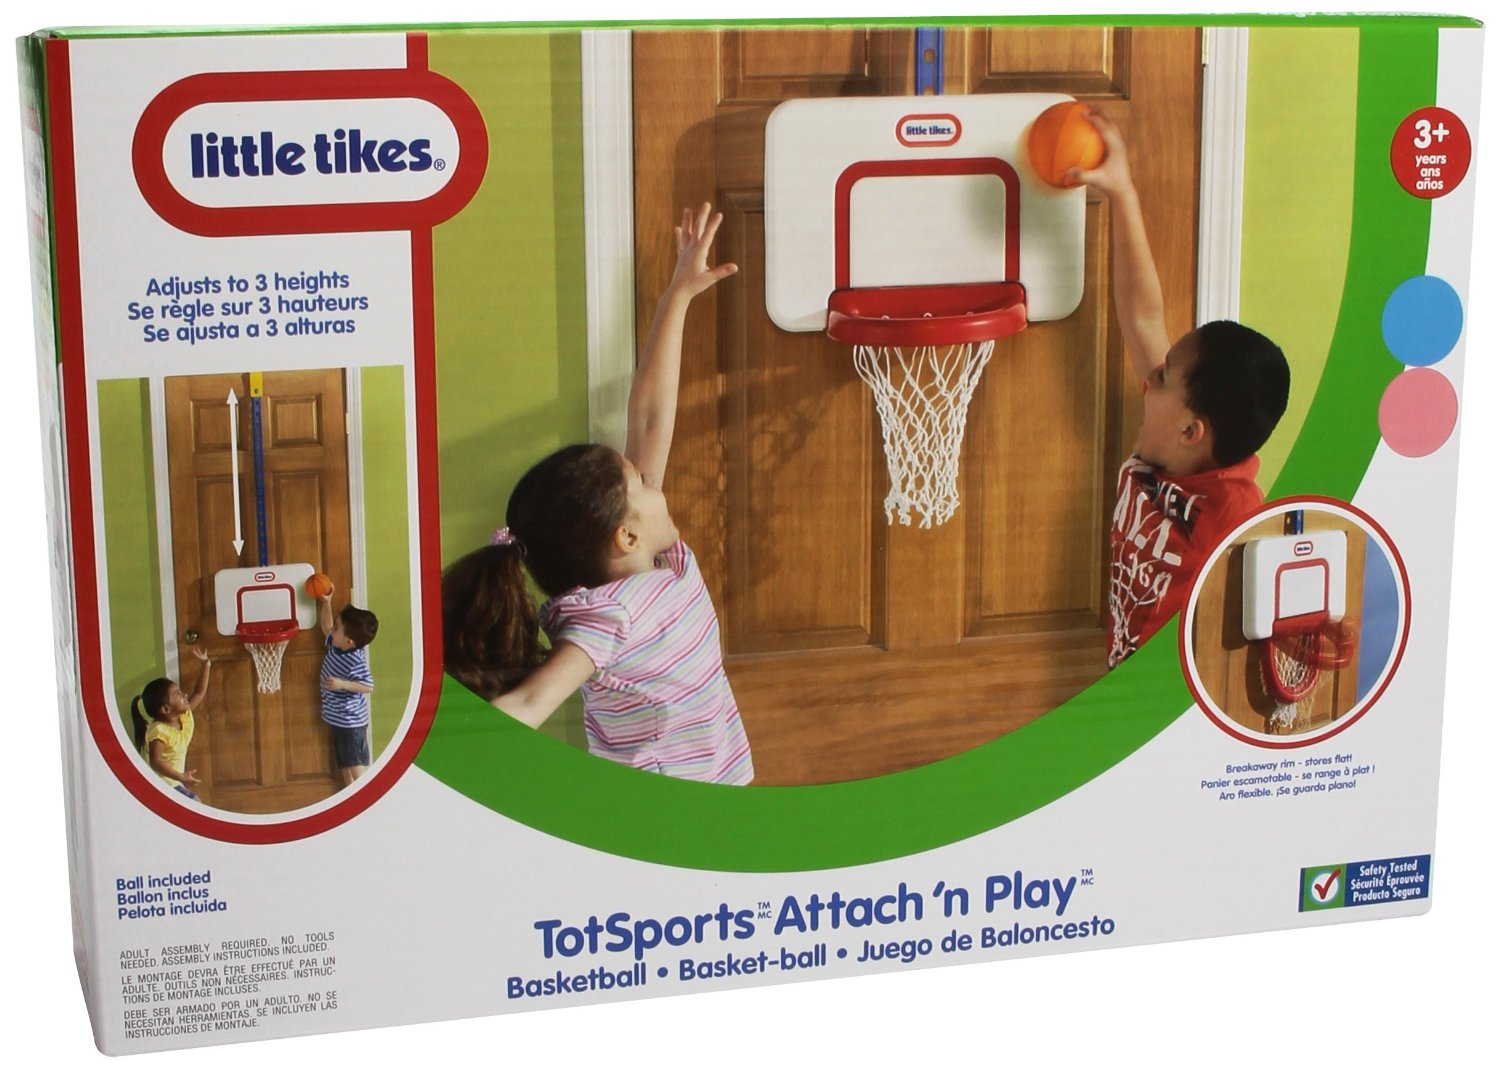 Little Tikes Fold And Store Table picture on little tikes attach n play basketball set just 12 reg 20 99 with Little Tikes Fold And Store Table, Folding Table 5cd03d4102e68cb4fedfa50ad0f0feca